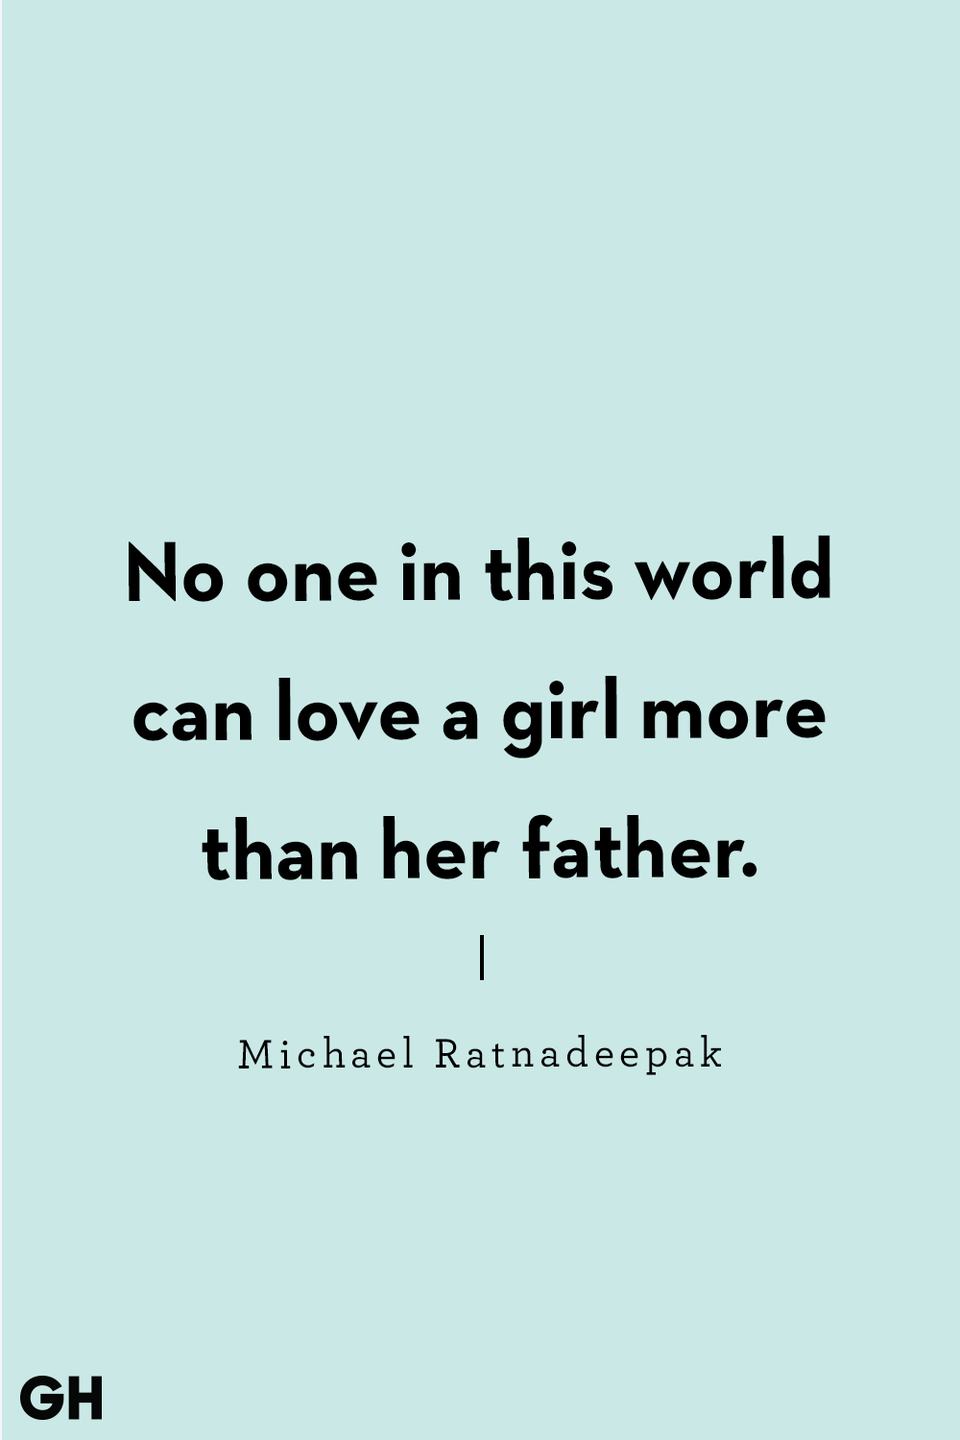 <p>No one in this world can love a girl more than her father.</p>